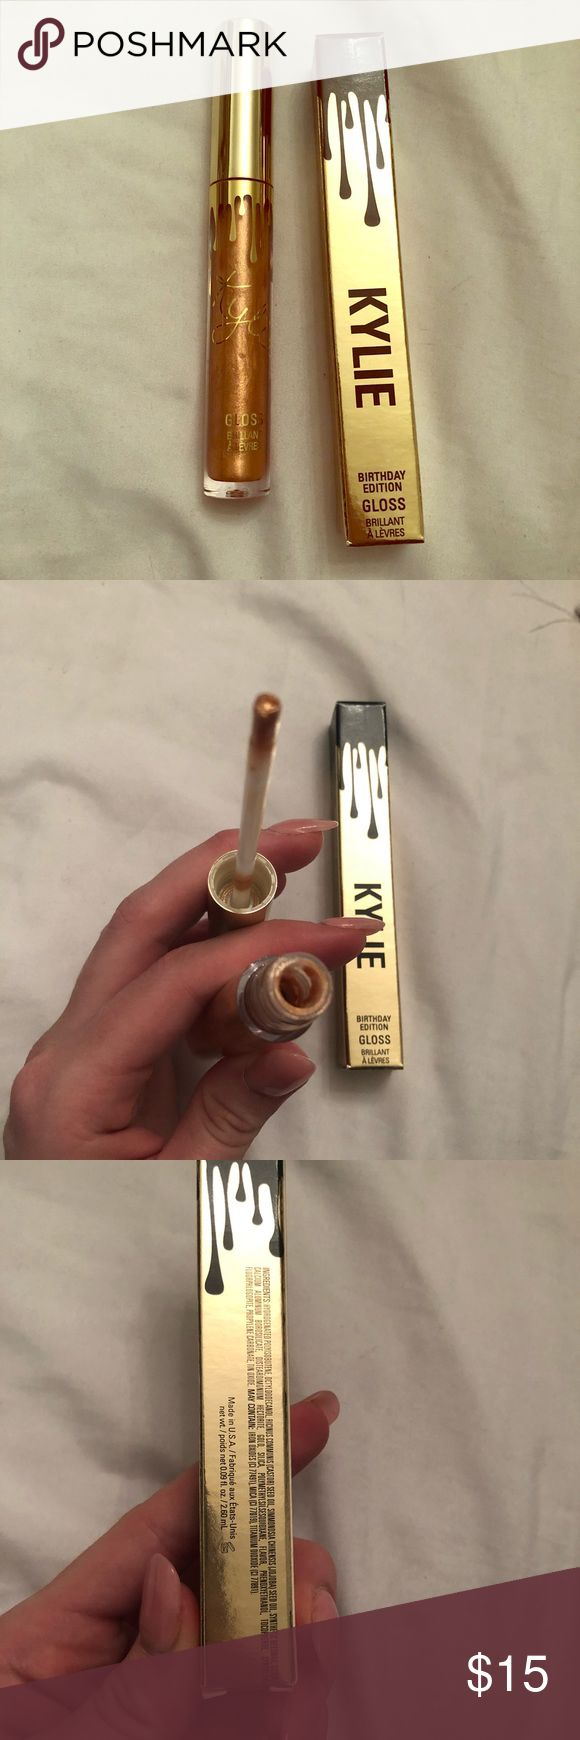 """Kylie Cosmetics """"Poppin"""" lip gloss Kylie Cosmetics """"Poppin"""" lip gloss 